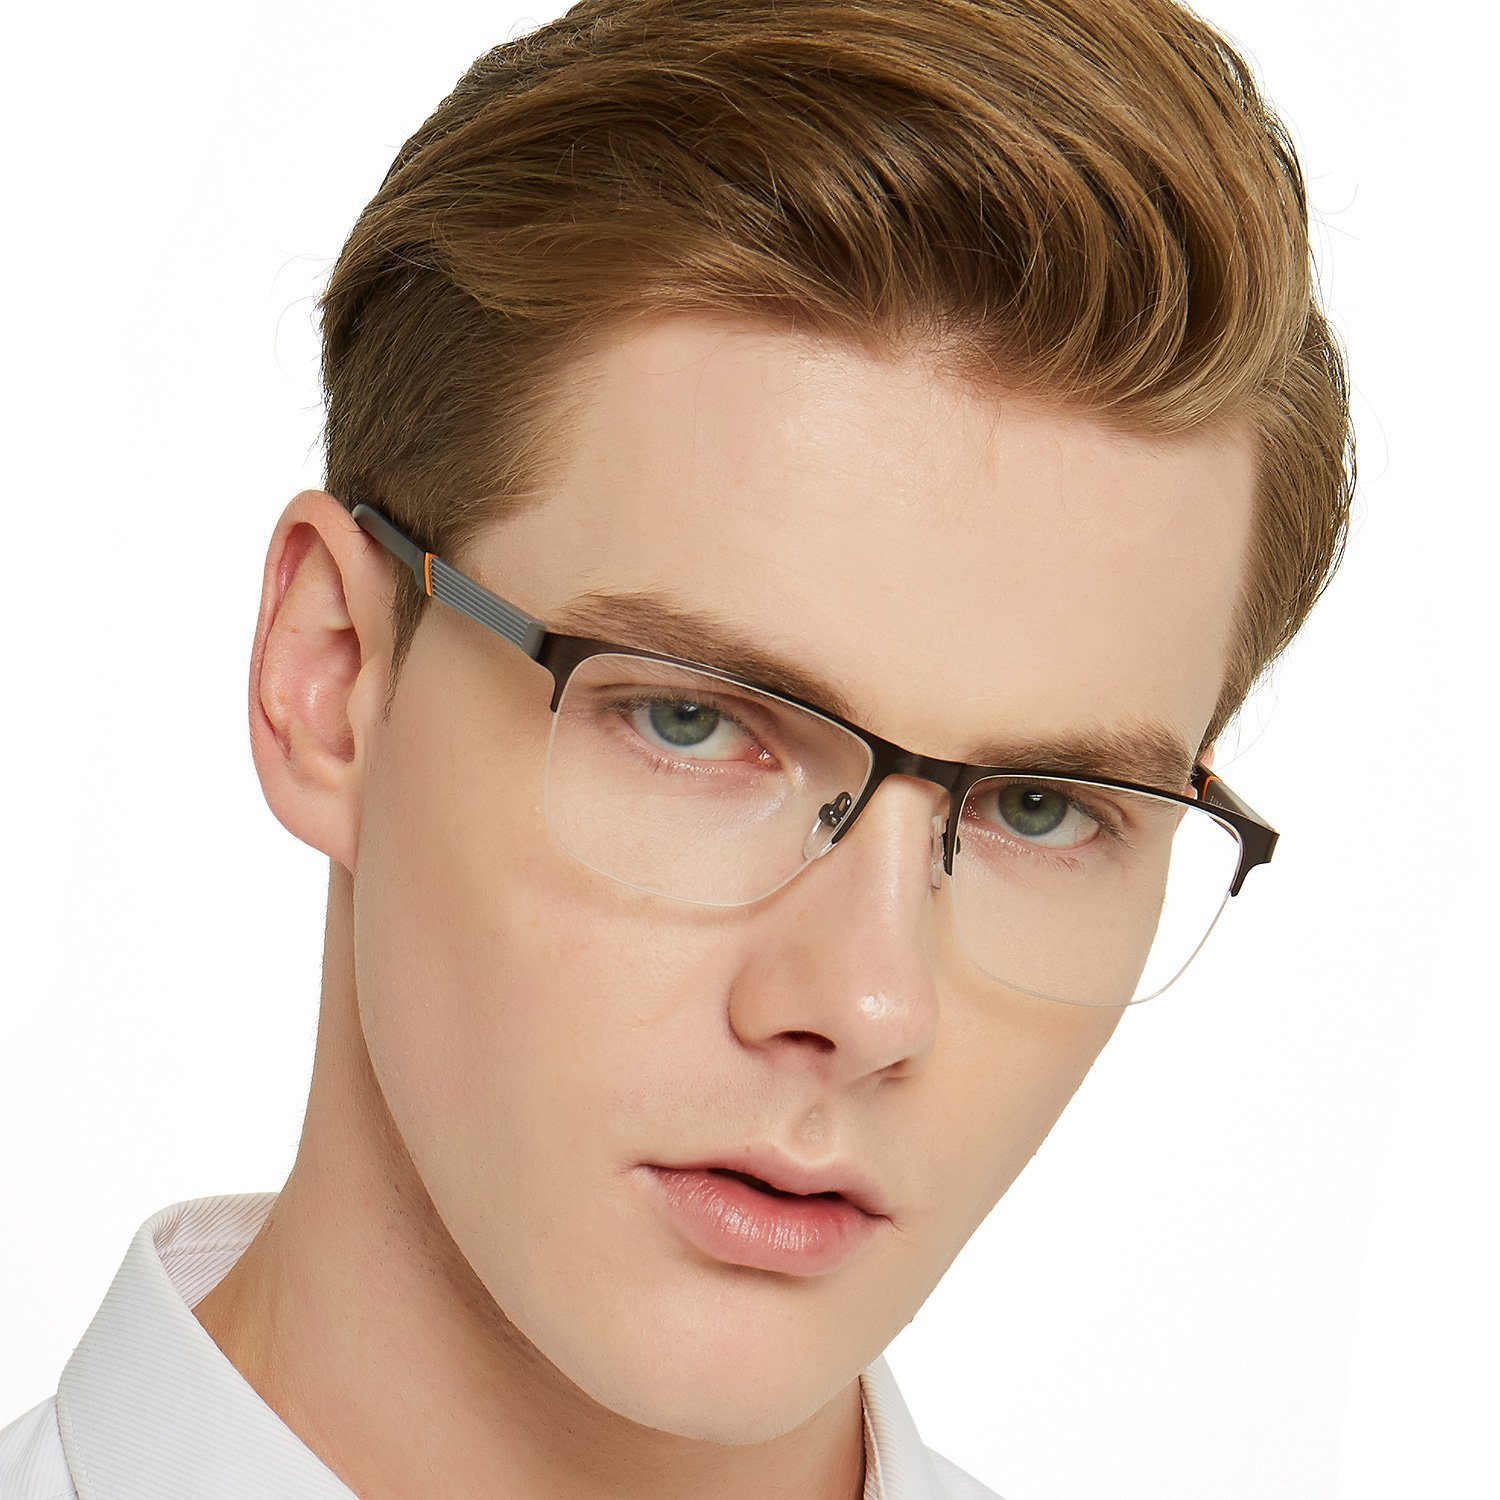 OCCI CHIARI Men Rectange Optical Eyewear frames With Non-Prescription Clear Lenses 54) OG-B05040-C5